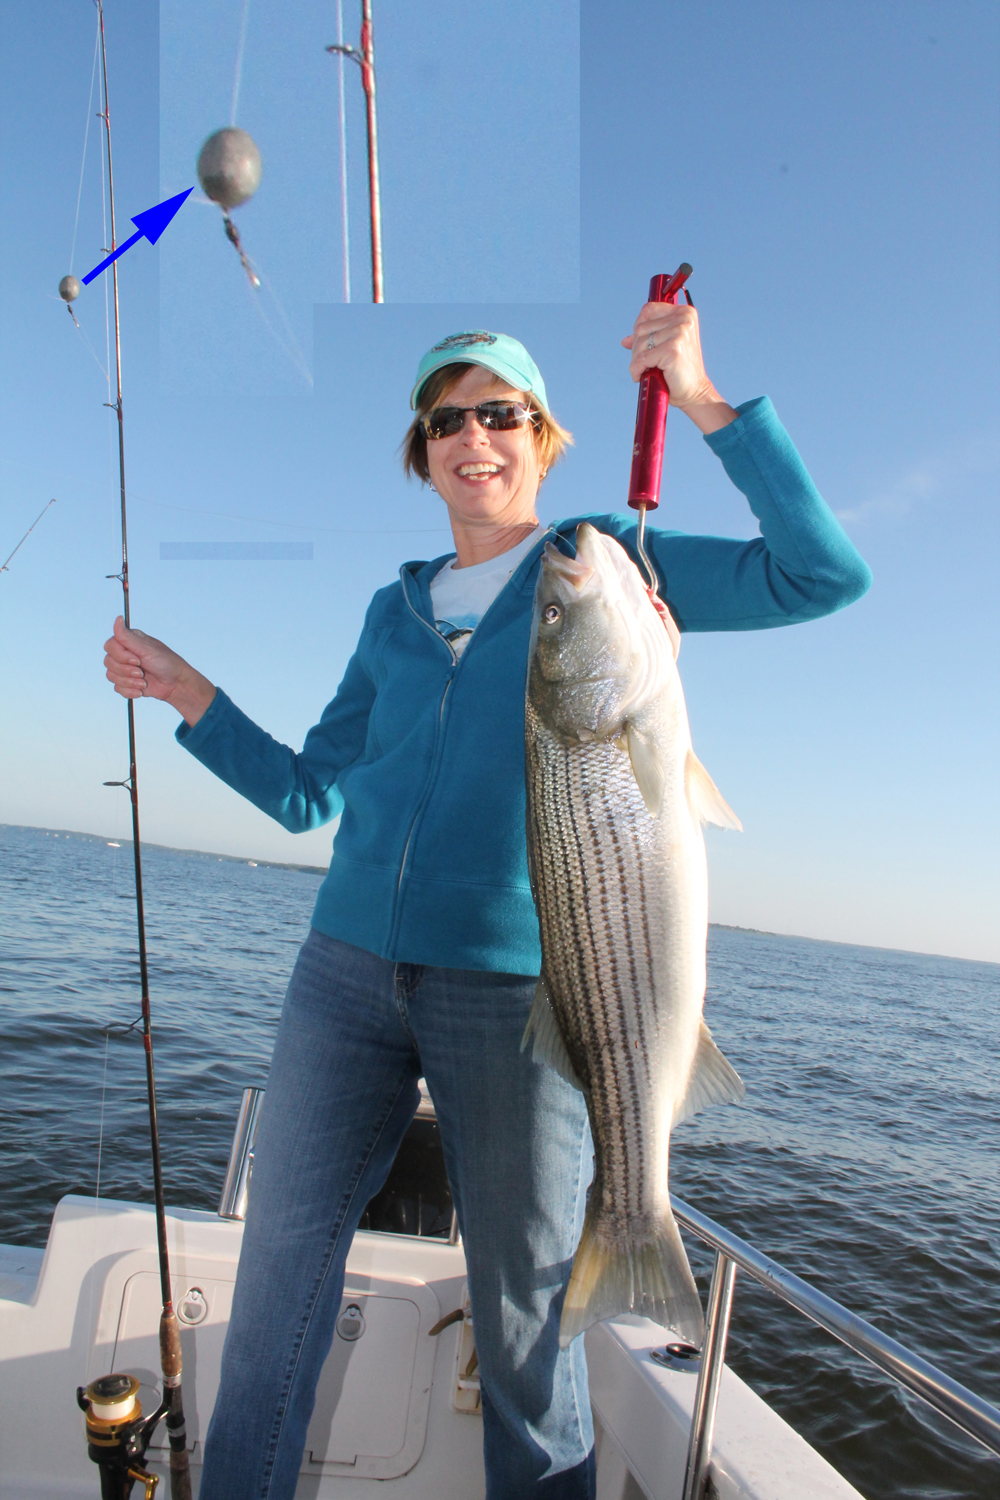 striper caught chumming